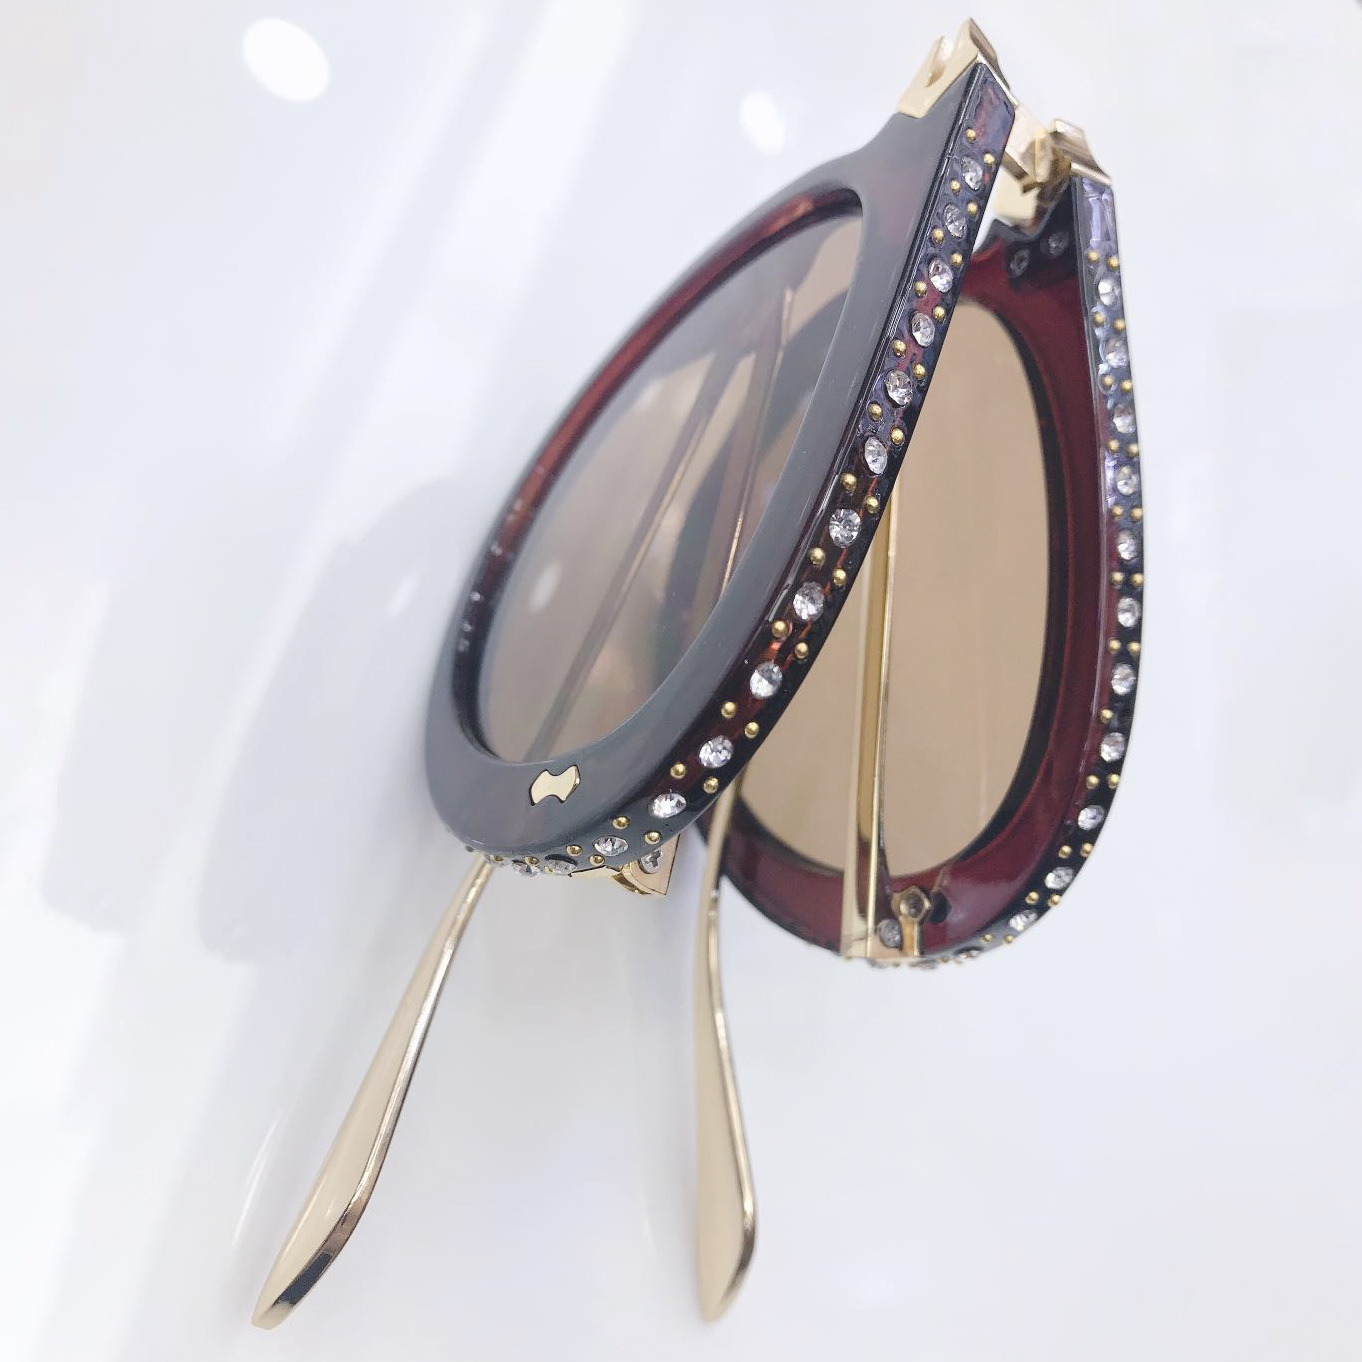 2019 New Fashion Metal Pilot Eyewear Women Rhinestone Diamond Foldable Sun glasses Shaped Frame Sunglasses from Italy  Design